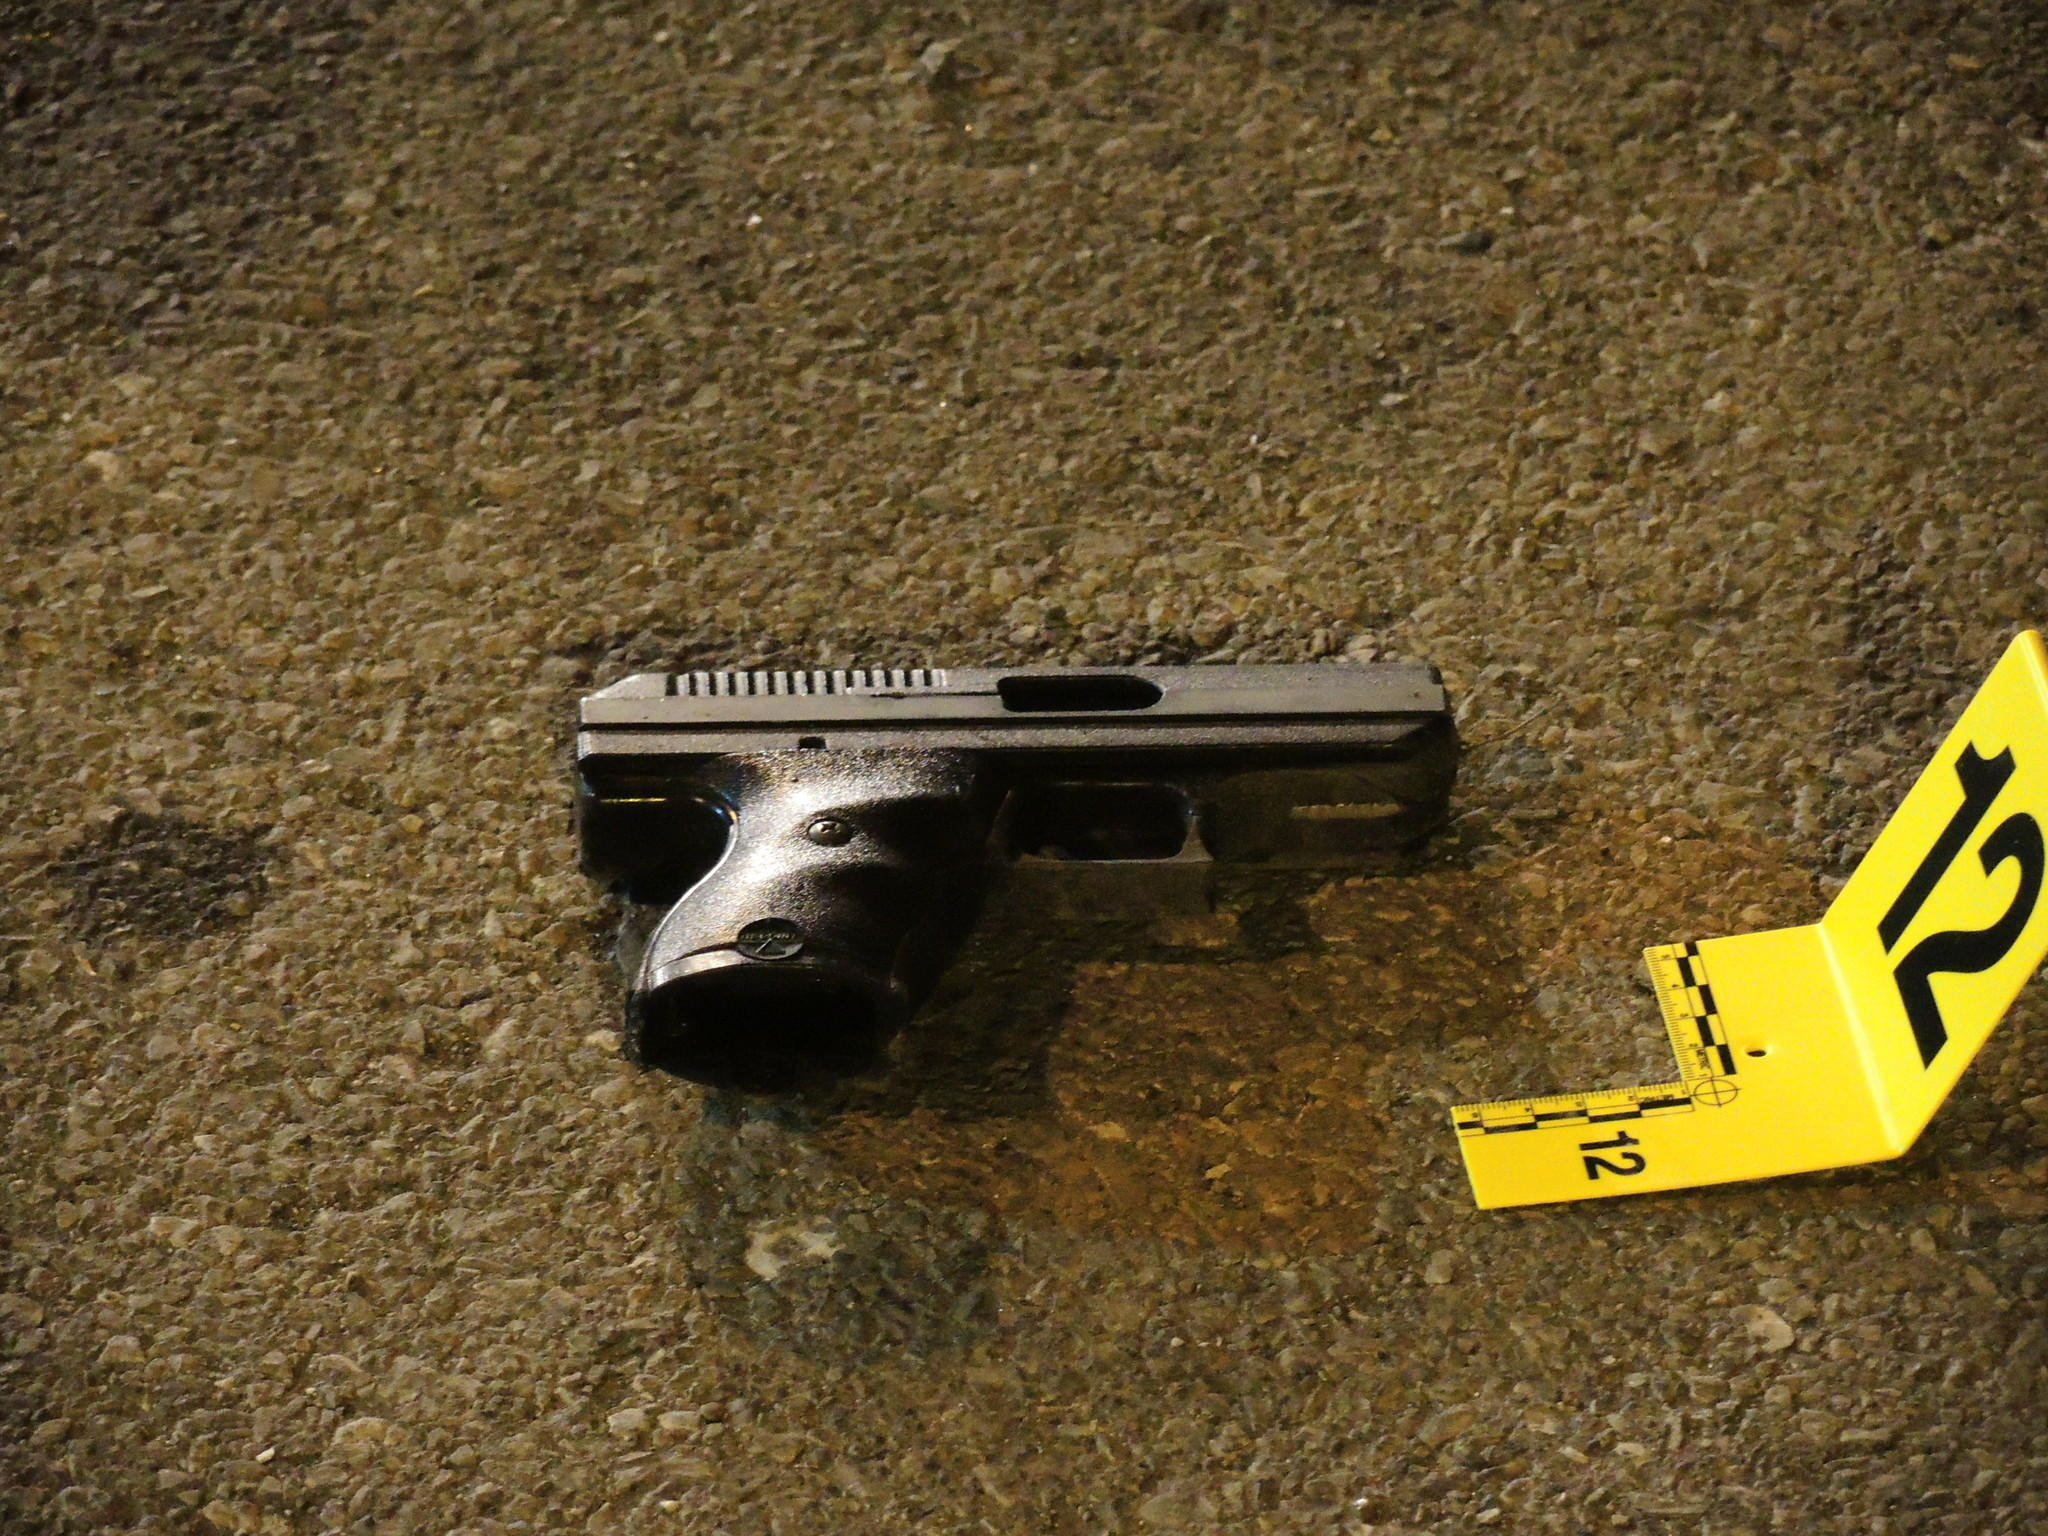 A .380 handgun tossed from the suspects' vehicle during a chase is marked as evidence.